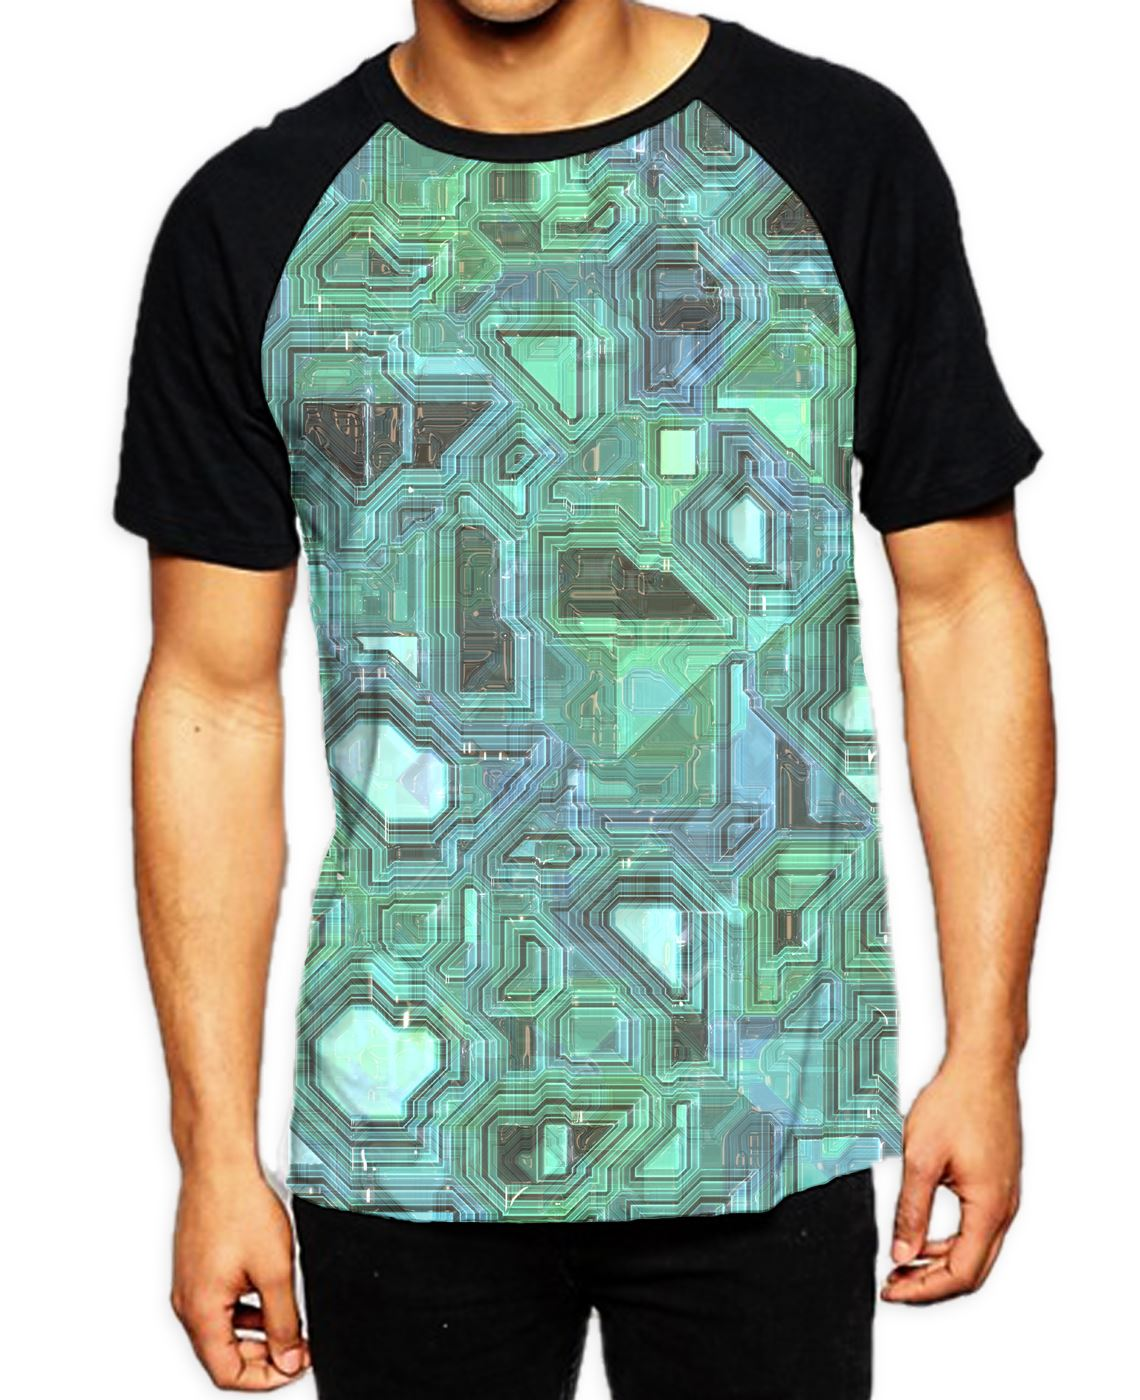 efced210f206 Details about Blue Geometric Pattern Men's All Over Print Graphic Contrast  Baseball T Shirt